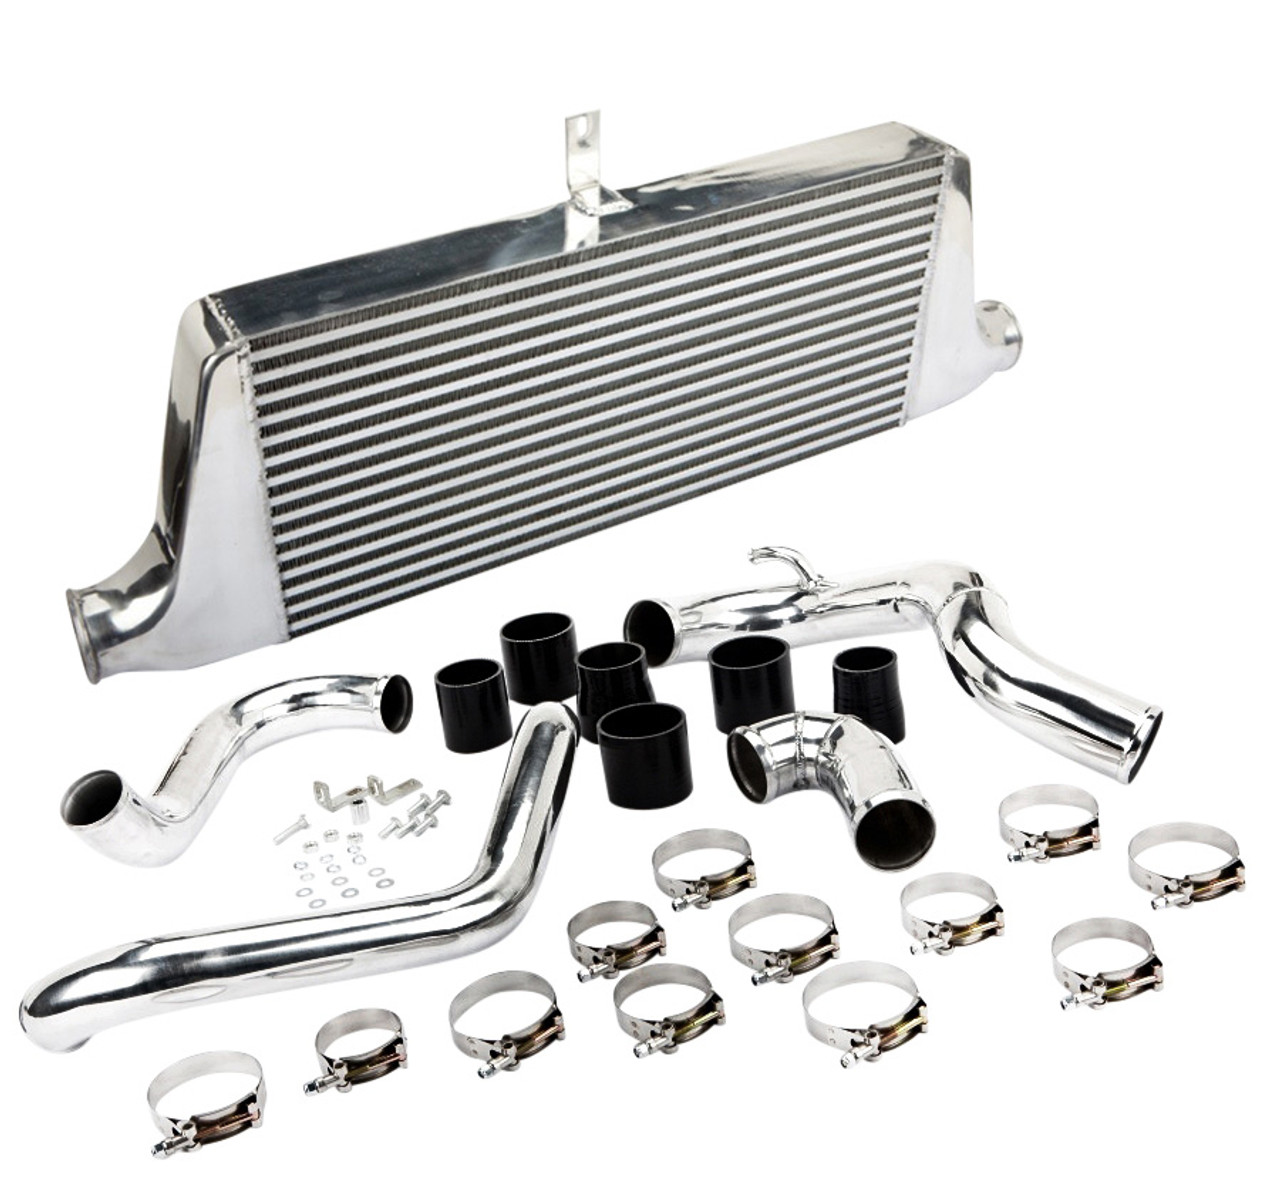 For 240SX 180SX CA18DET 89-94 Full Bar Plate Front Mount Intercooler Piping Pipe